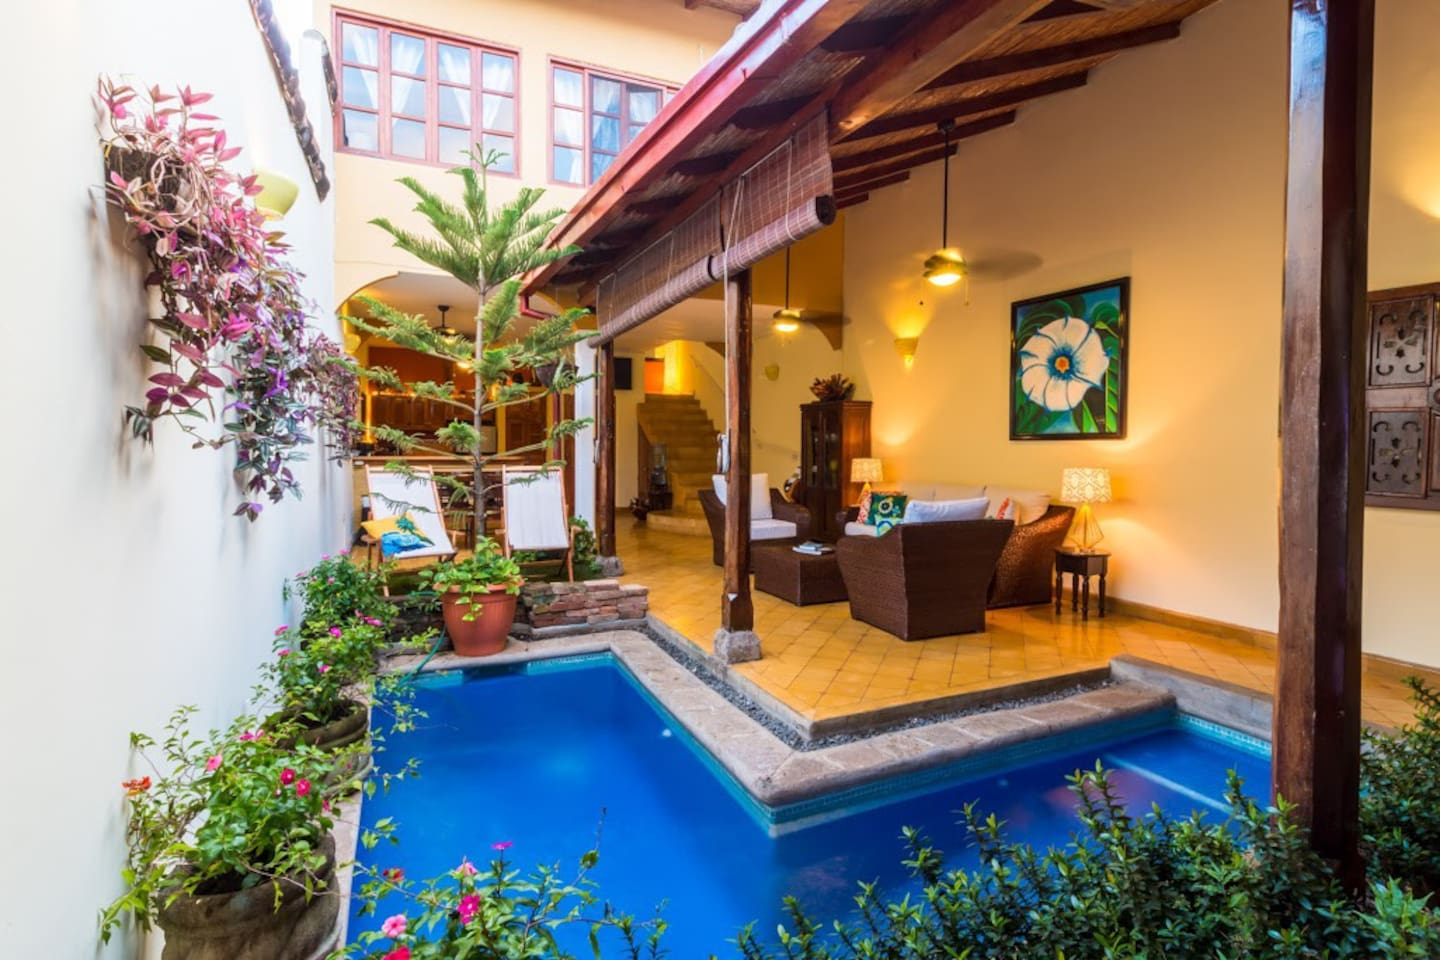 On the best street in town, Casa Romantica surprises you when you come inside! The private pool is both indoor and outdoor, so guests can take a dip in sun or shade, stargaze at night or float in a rain storm, all from the living room!